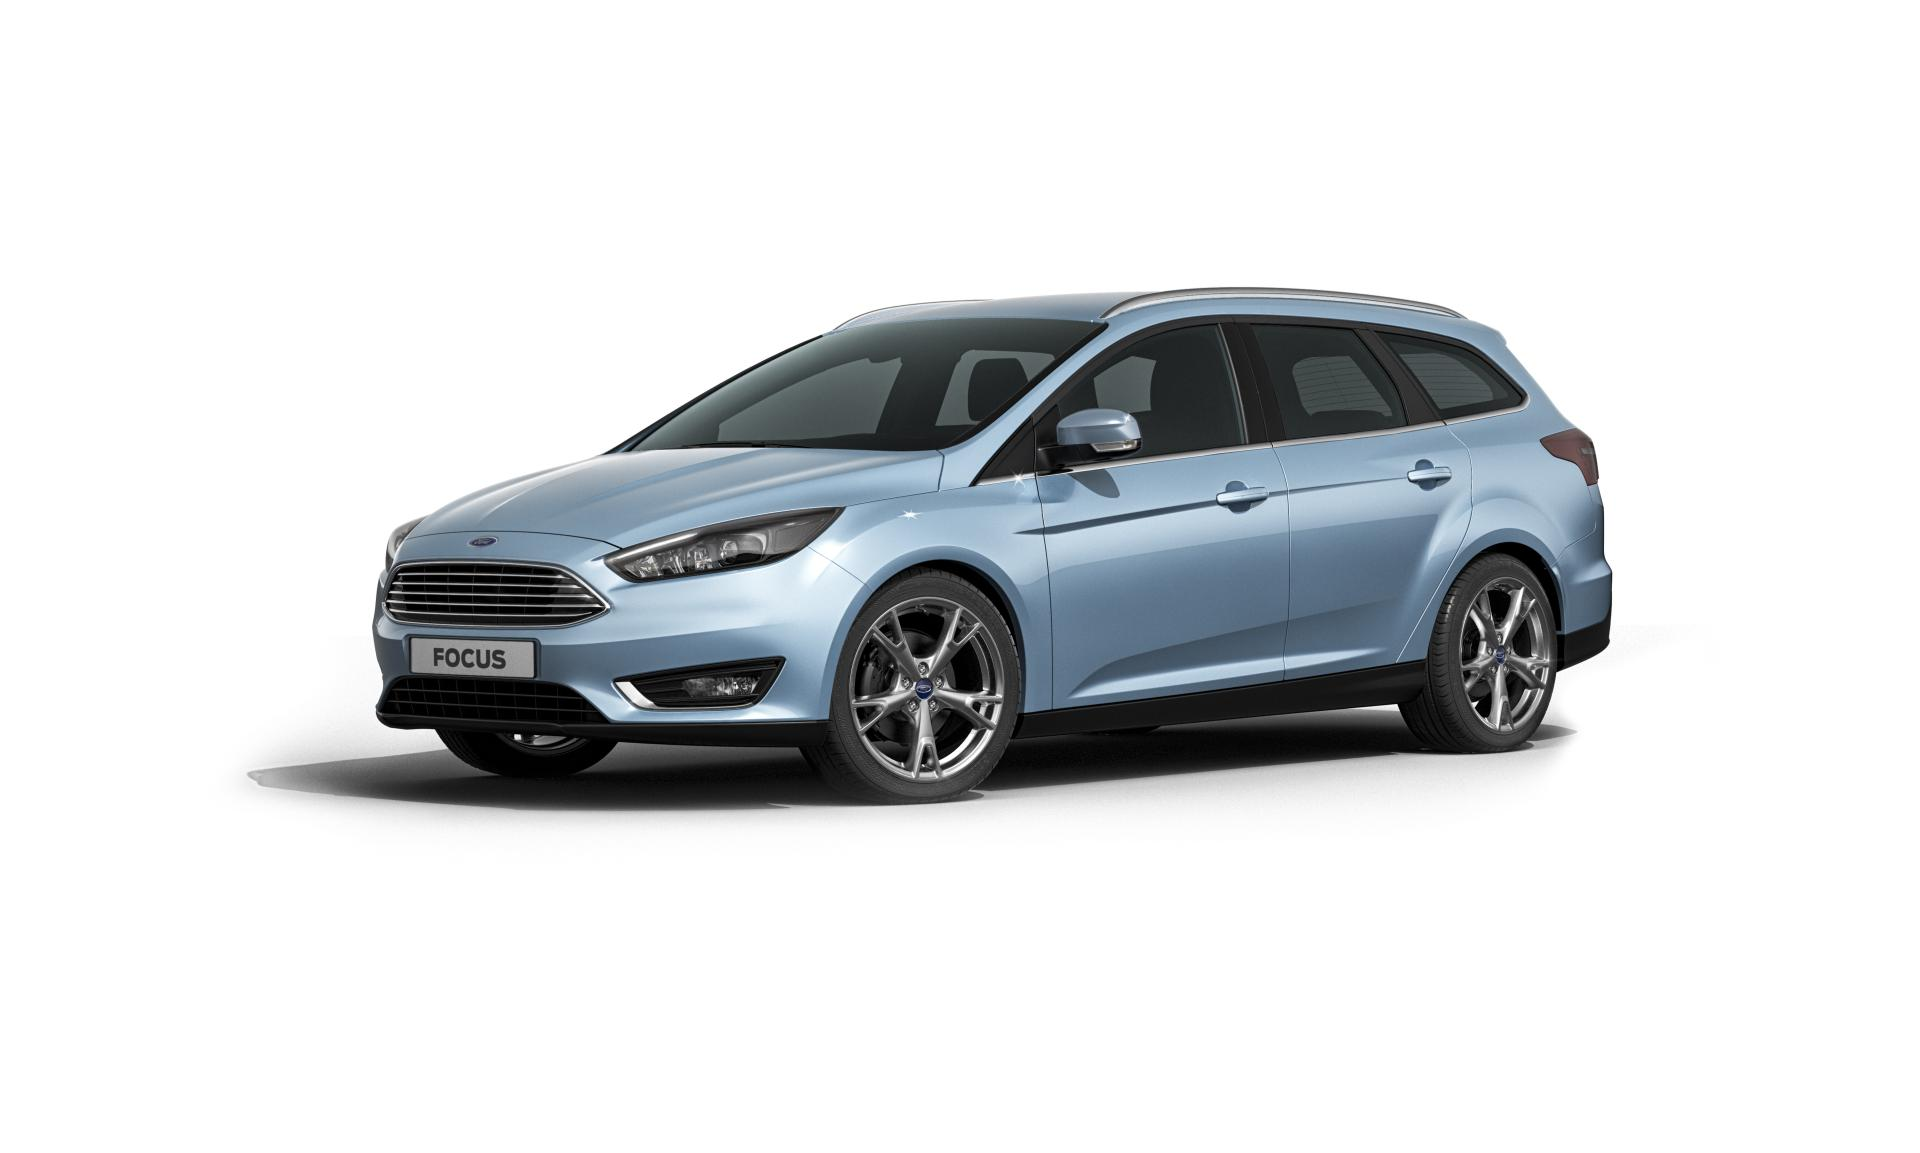 2015-Ford-Focus-Wagon-01.jpg